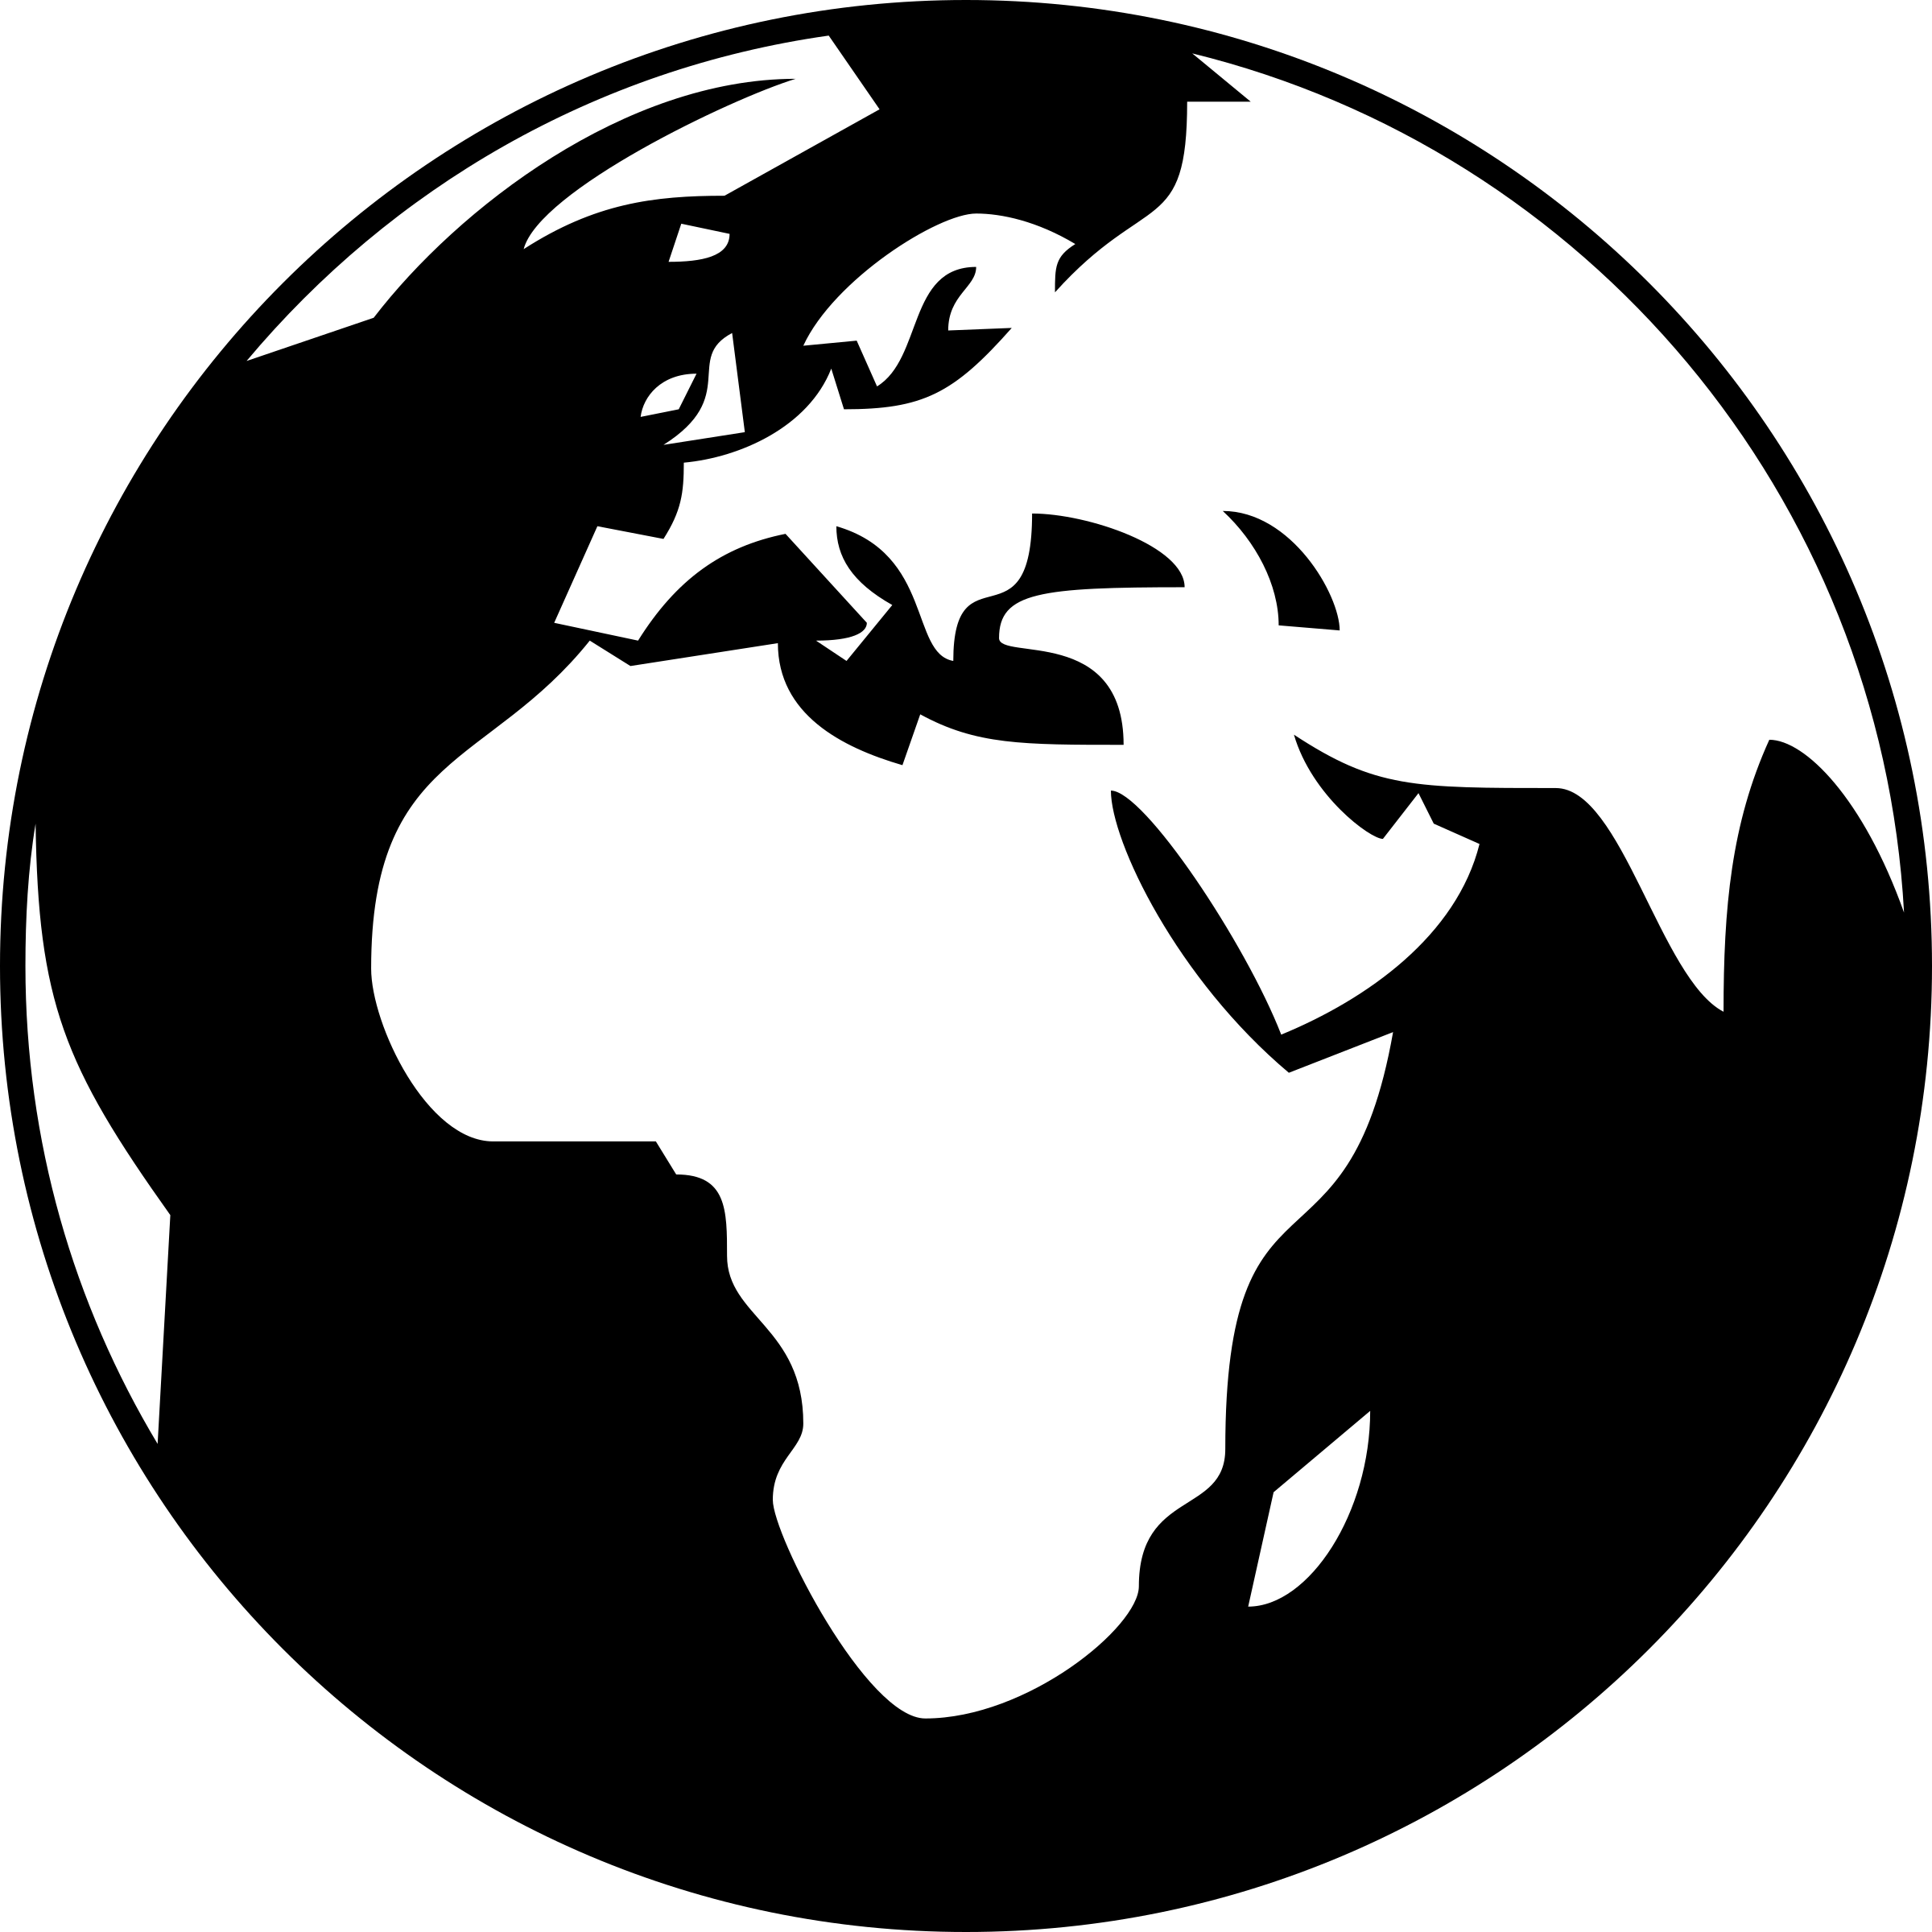 svg black and white Europe clipart logo earth. Simple globe showing africa